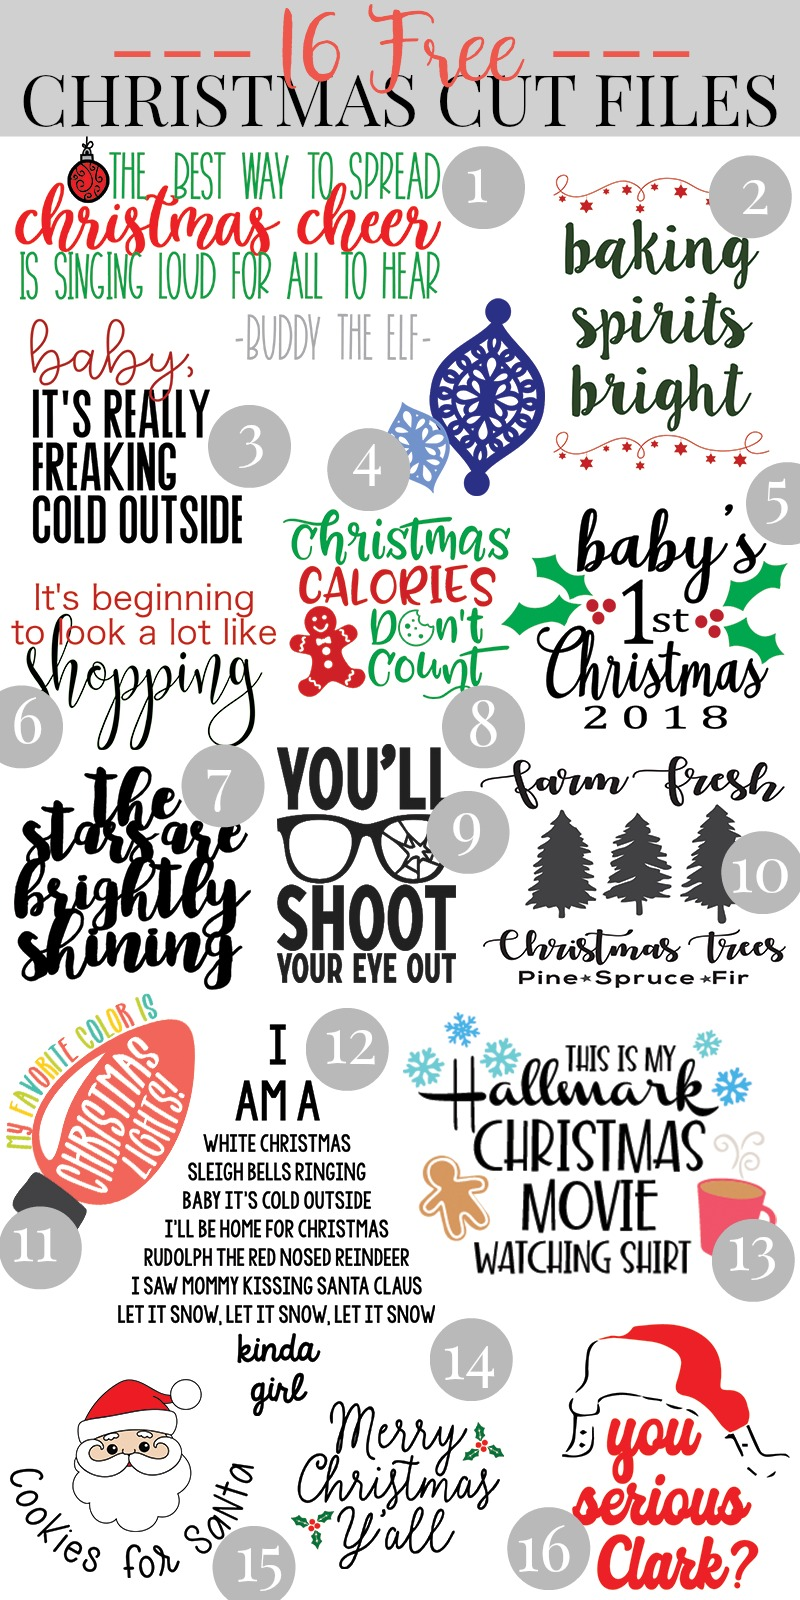 16 Free Christmas Cut Files- Pull out your Cricut or SIlhouette and get crafting! We are sharing 16 free Christmas SVG Files that are perfect for creating handmade gifts and clothing for the winter holidays! #Cricut #Silhouette #FreeSVG #Christmas #ChristmasSVG